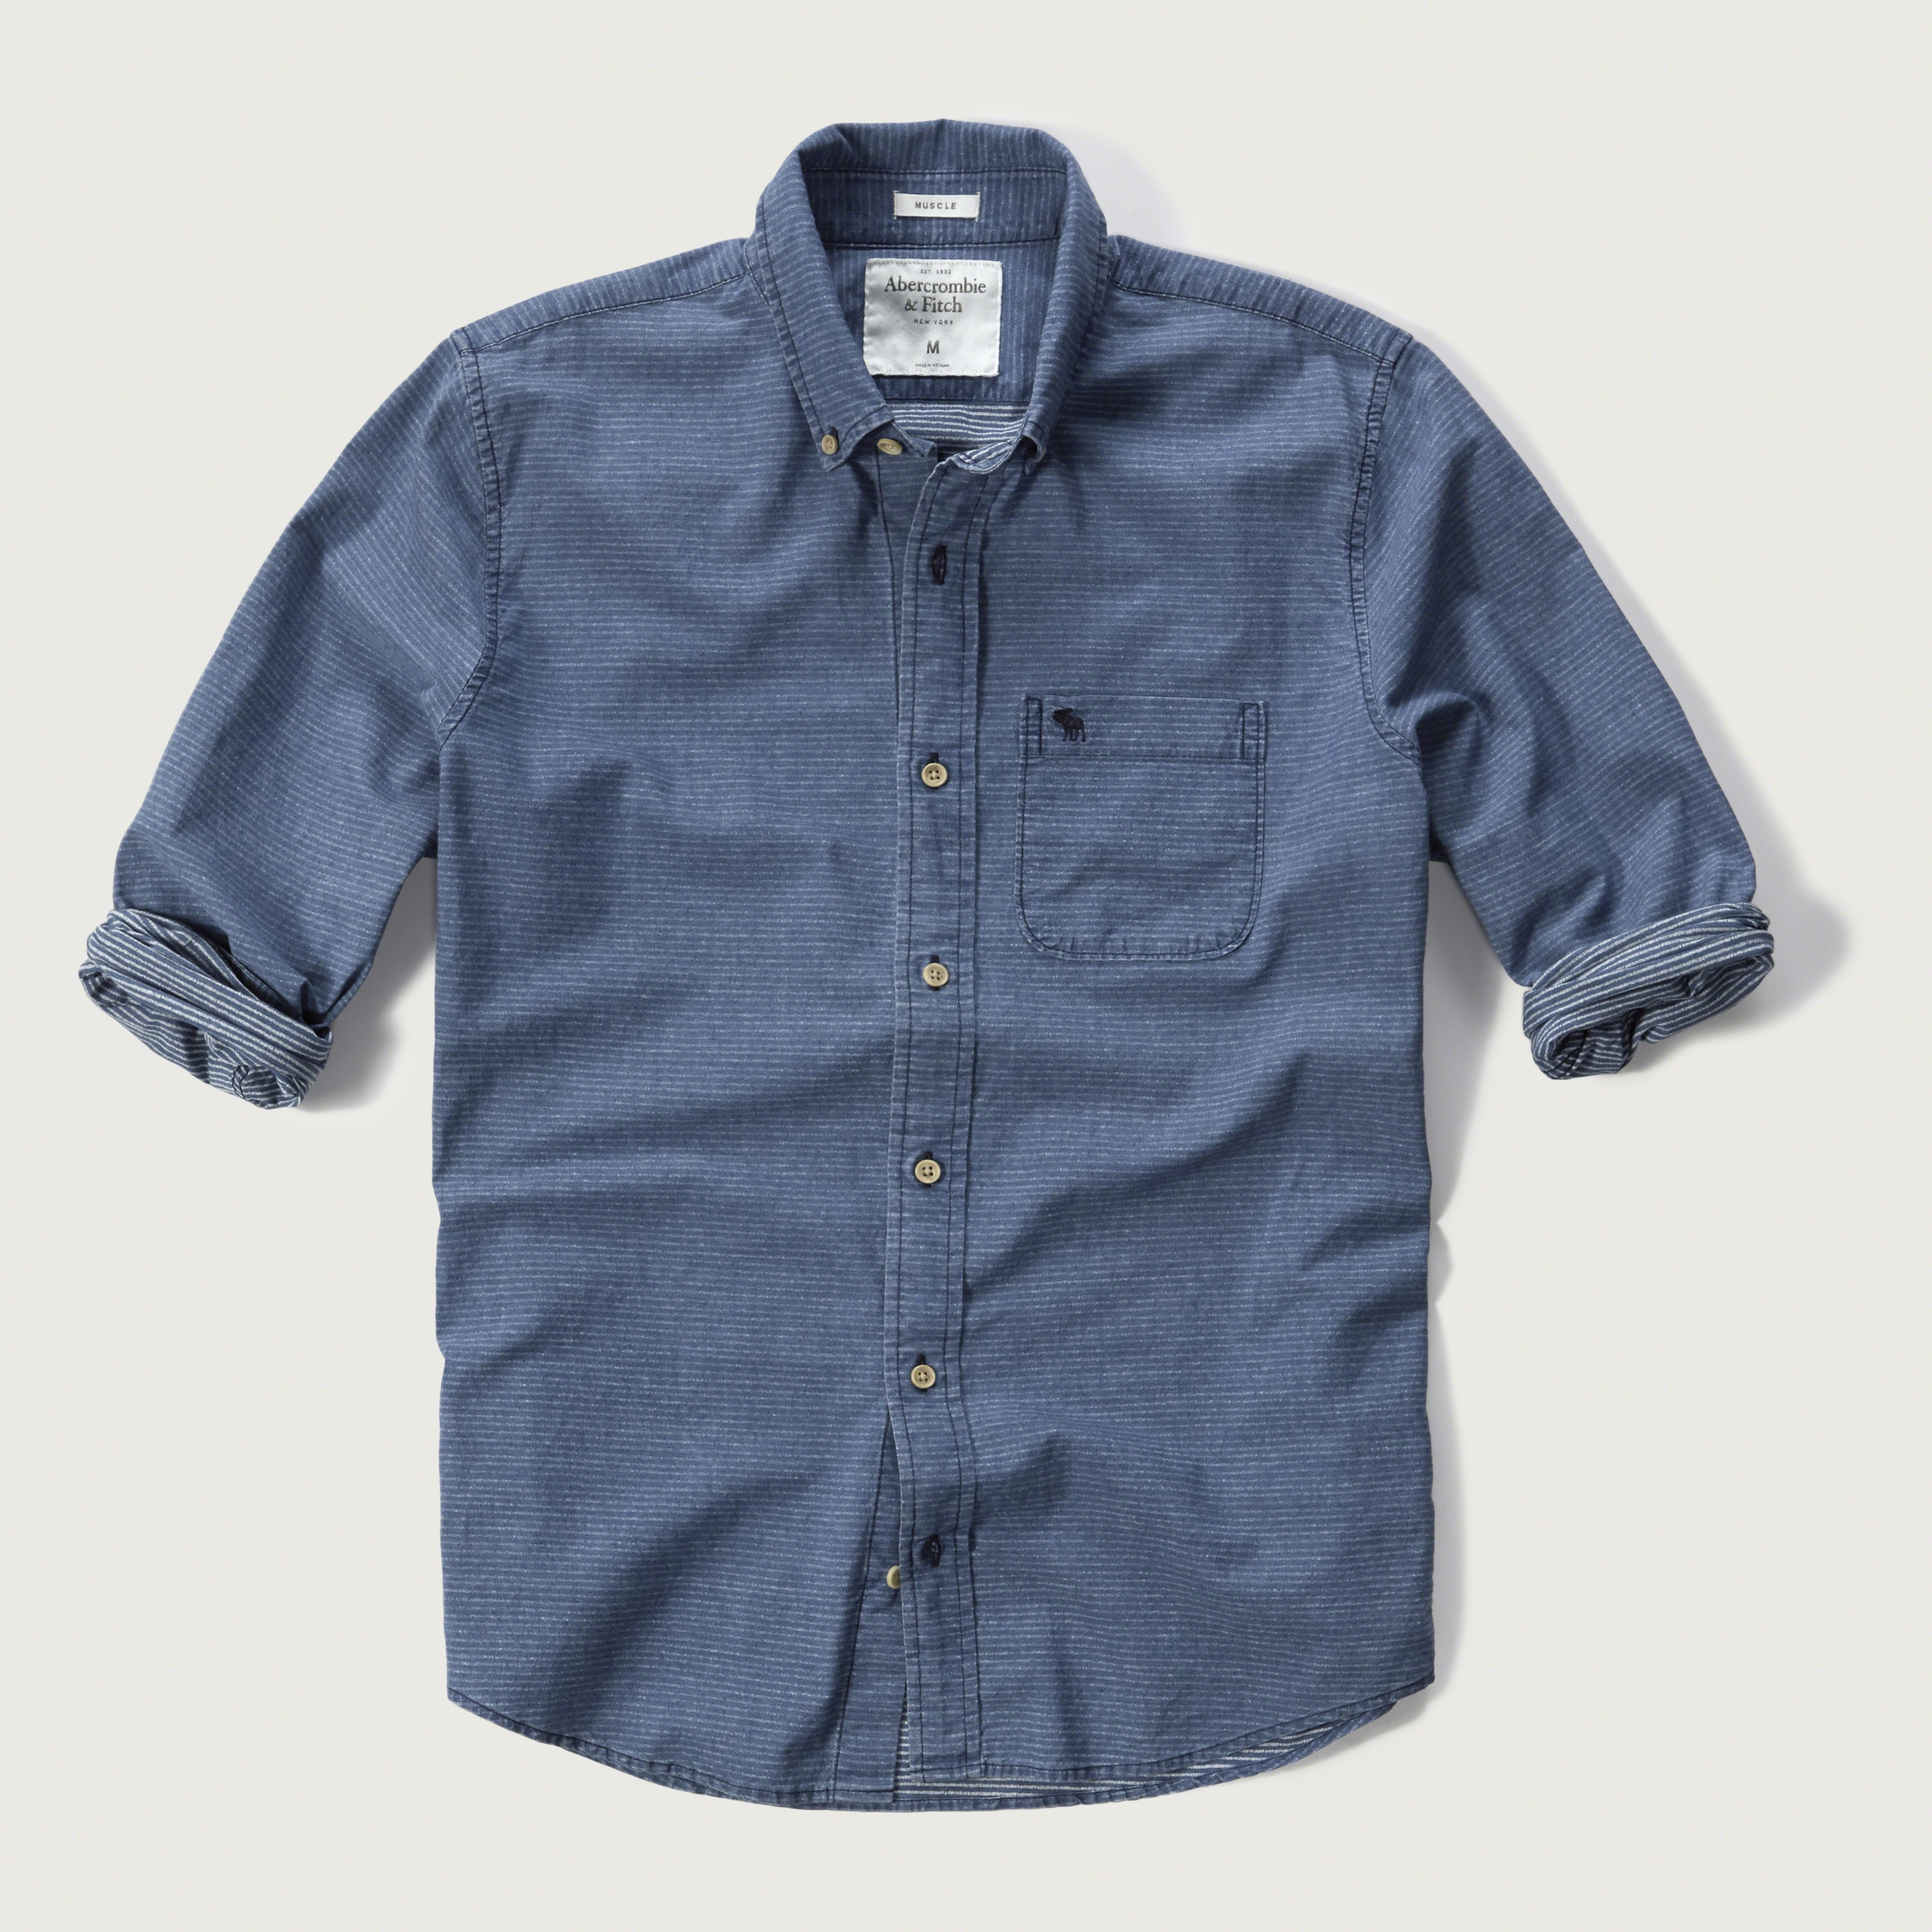 lyst abercrombie amp fitch iconic stripe shirt in blue for men